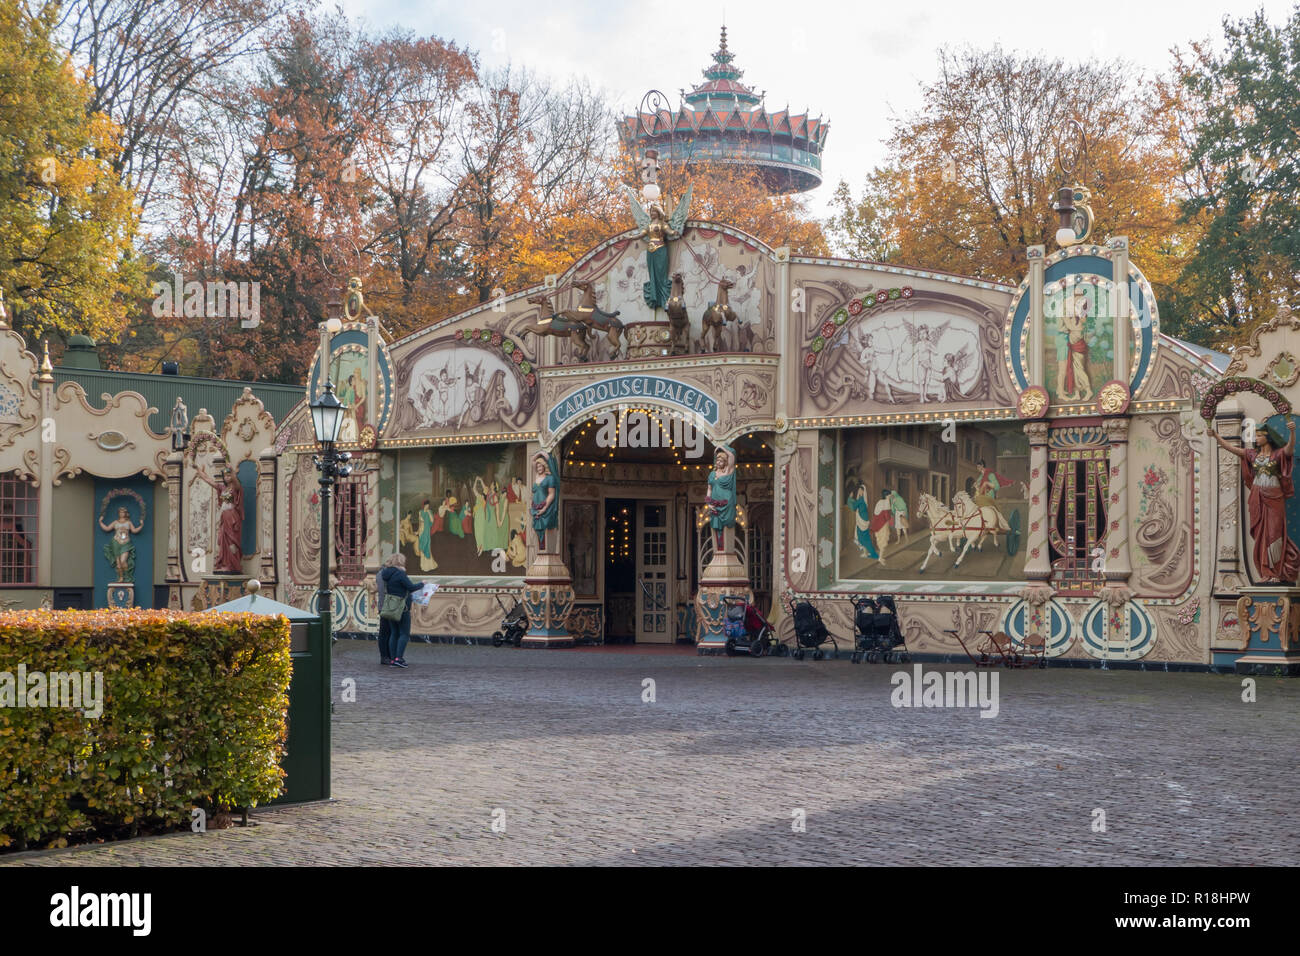 Carrousel Theater in Efteling amusement park - Stock Image